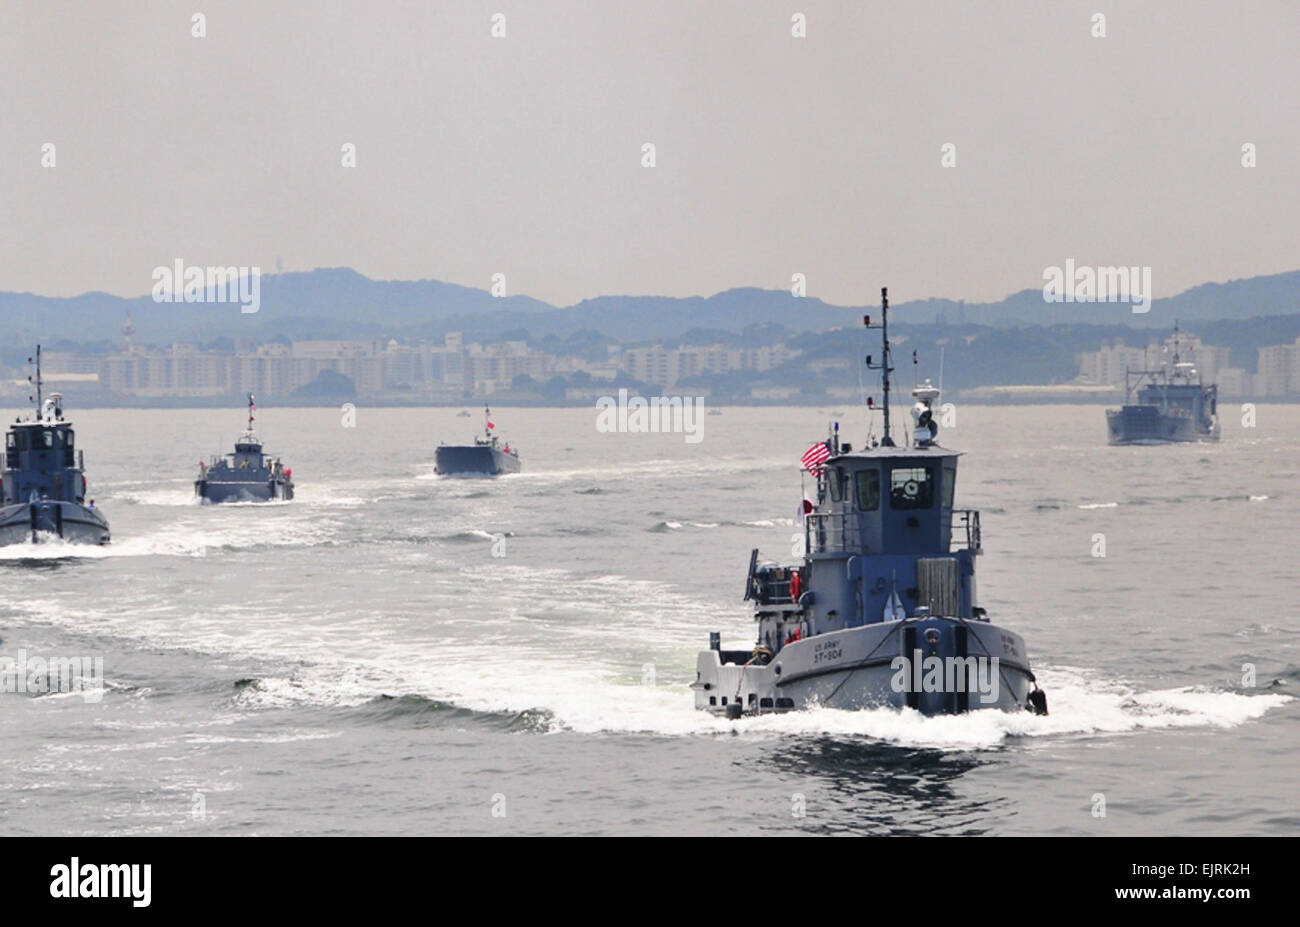 Photos by: Corey Horn, AMC G3 APS Operations  Underway convoy - Army Vessel ST-904 Green Springs leads a waterborne - Stock Image